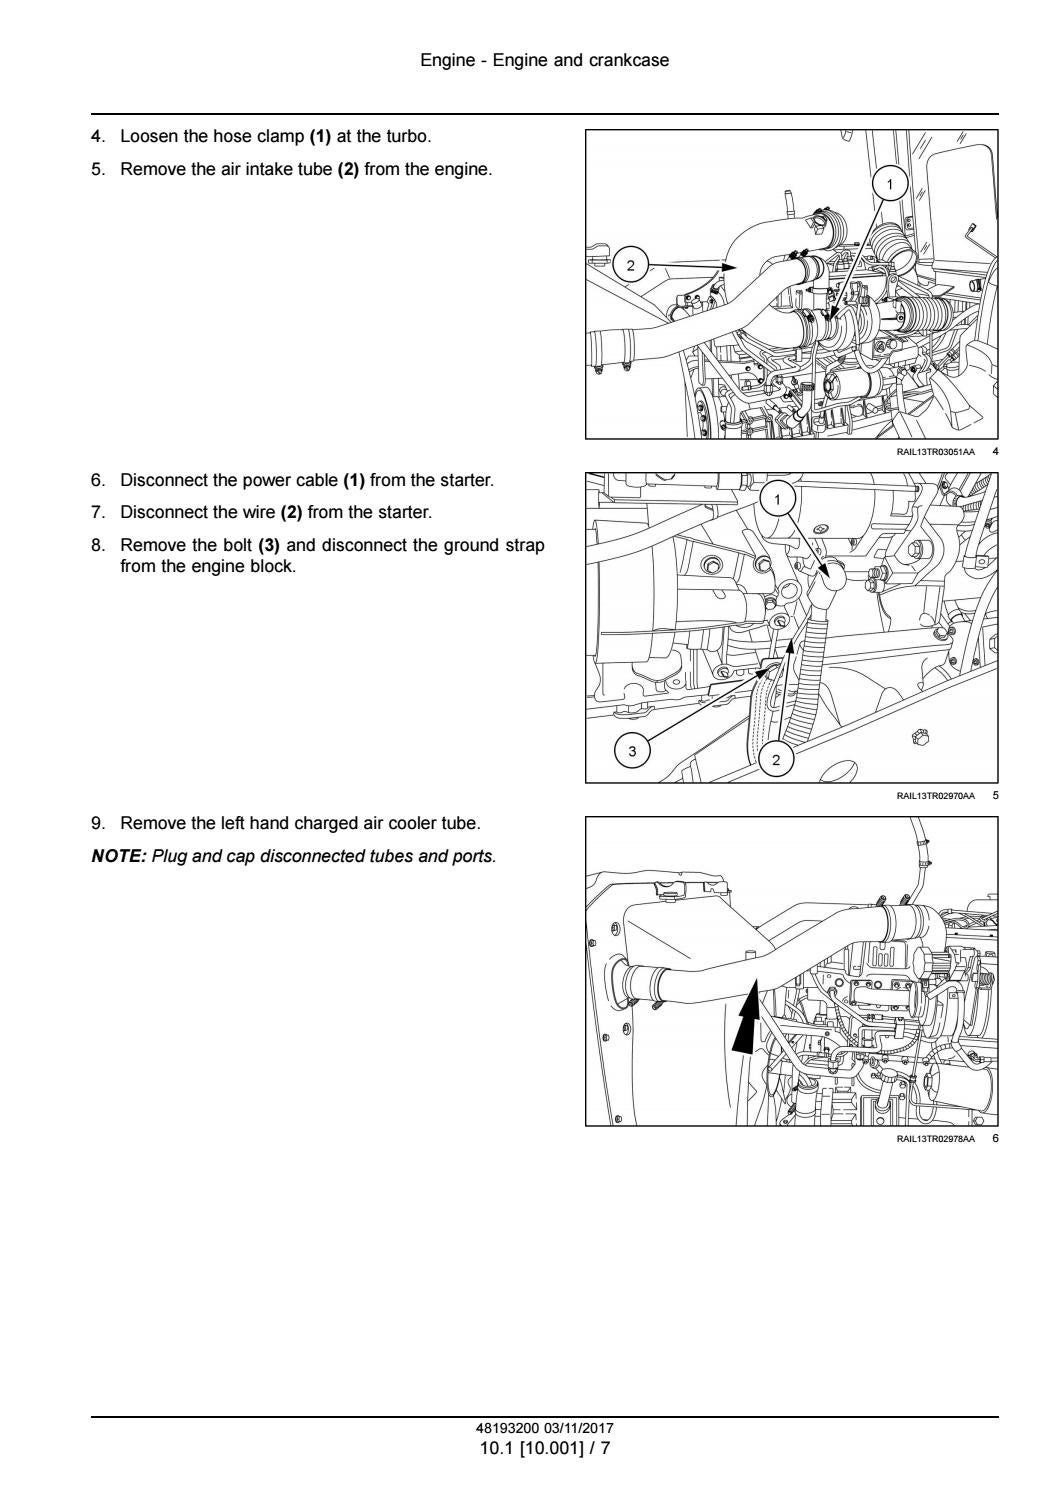 CASE IH Steiger 580 Stage IV Tractor Service Repair Manual